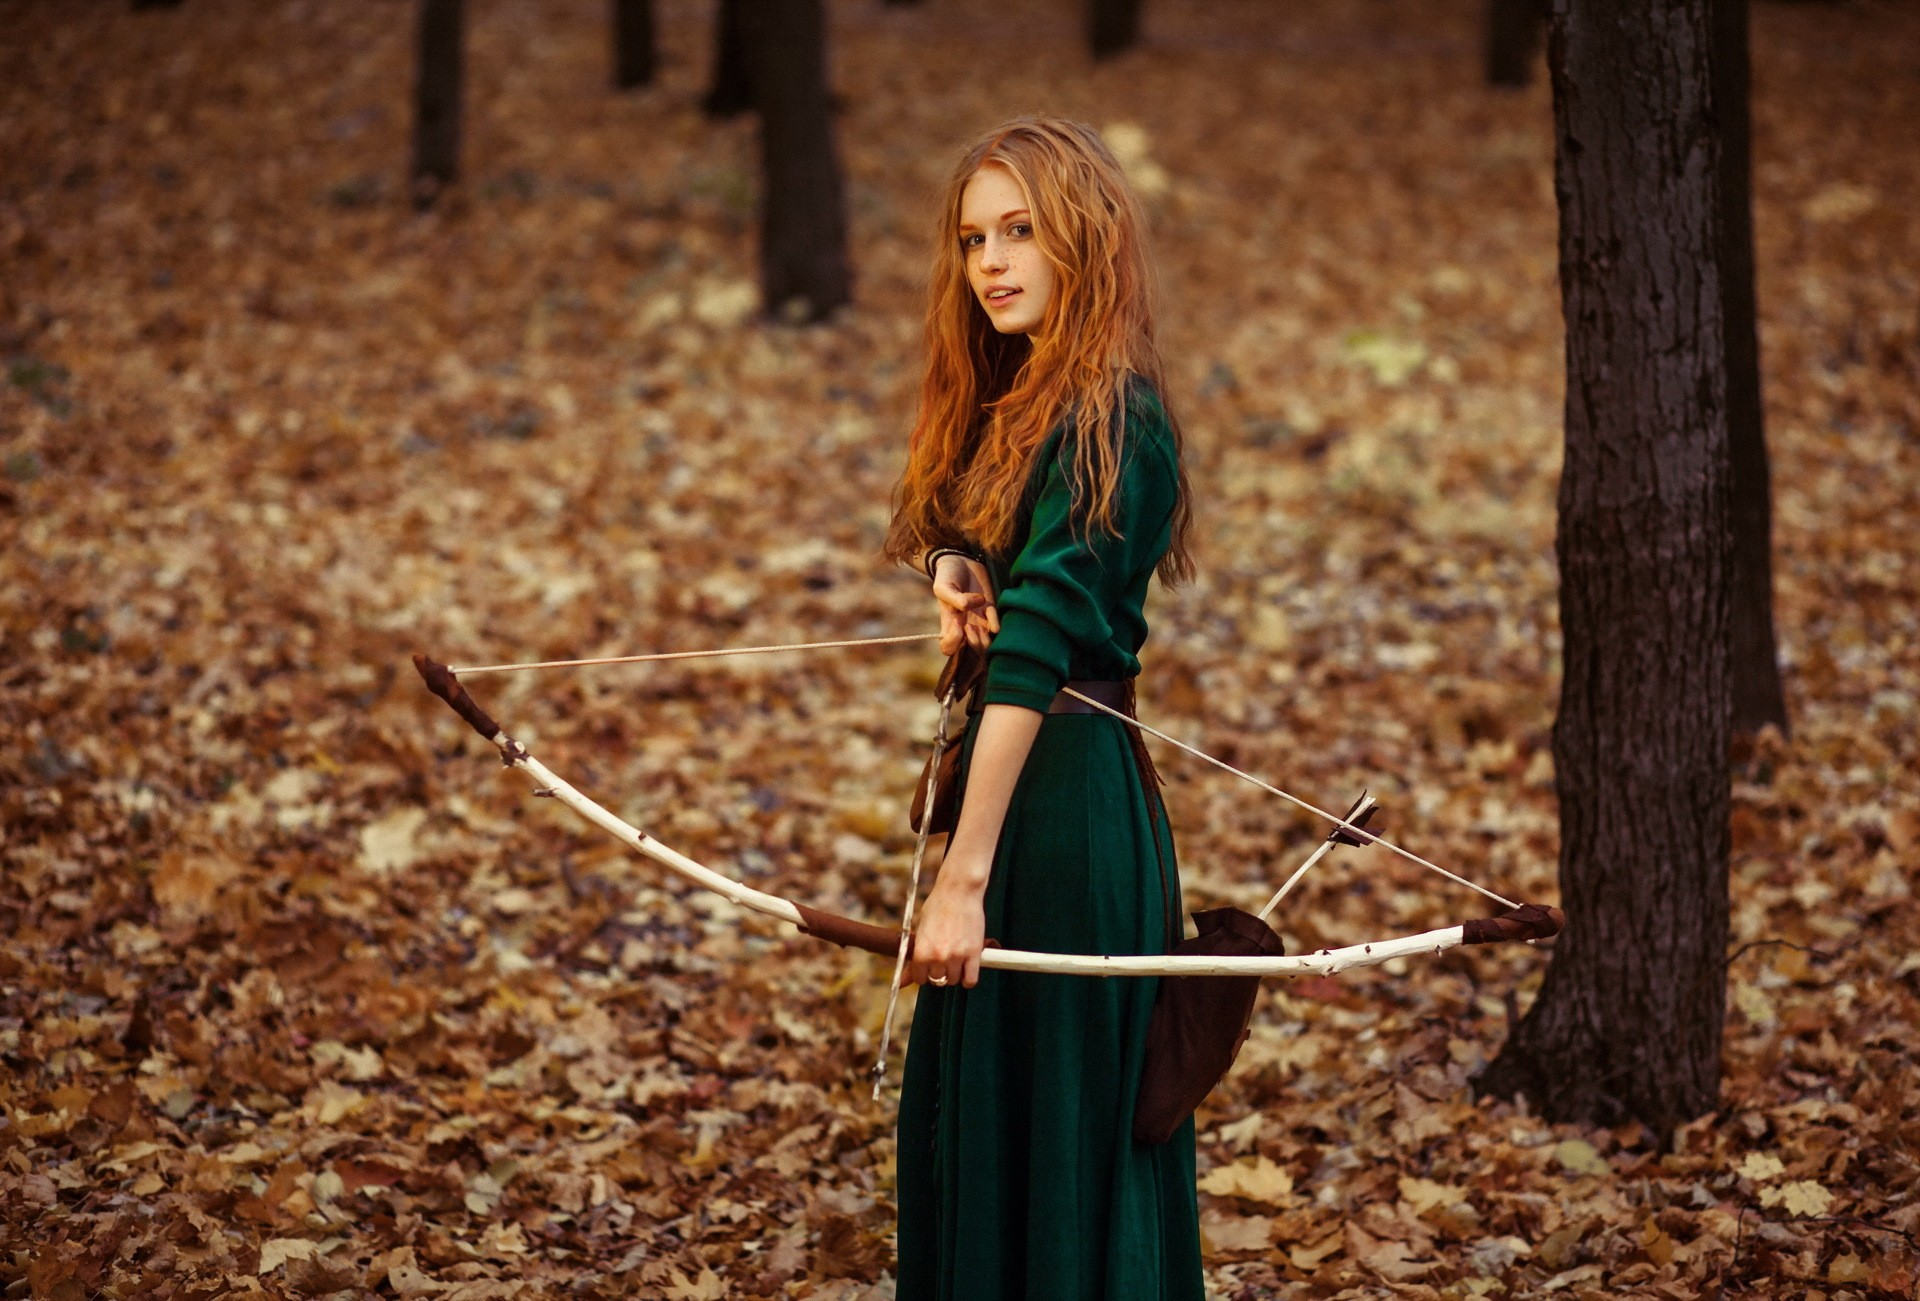 People 1920x1301 women archer redhead long hair archery Princess Merida arrows bow women outdoors leaves fall depth of field bokeh trees forest green dress green clothing dress leather belt belt quiver young woman